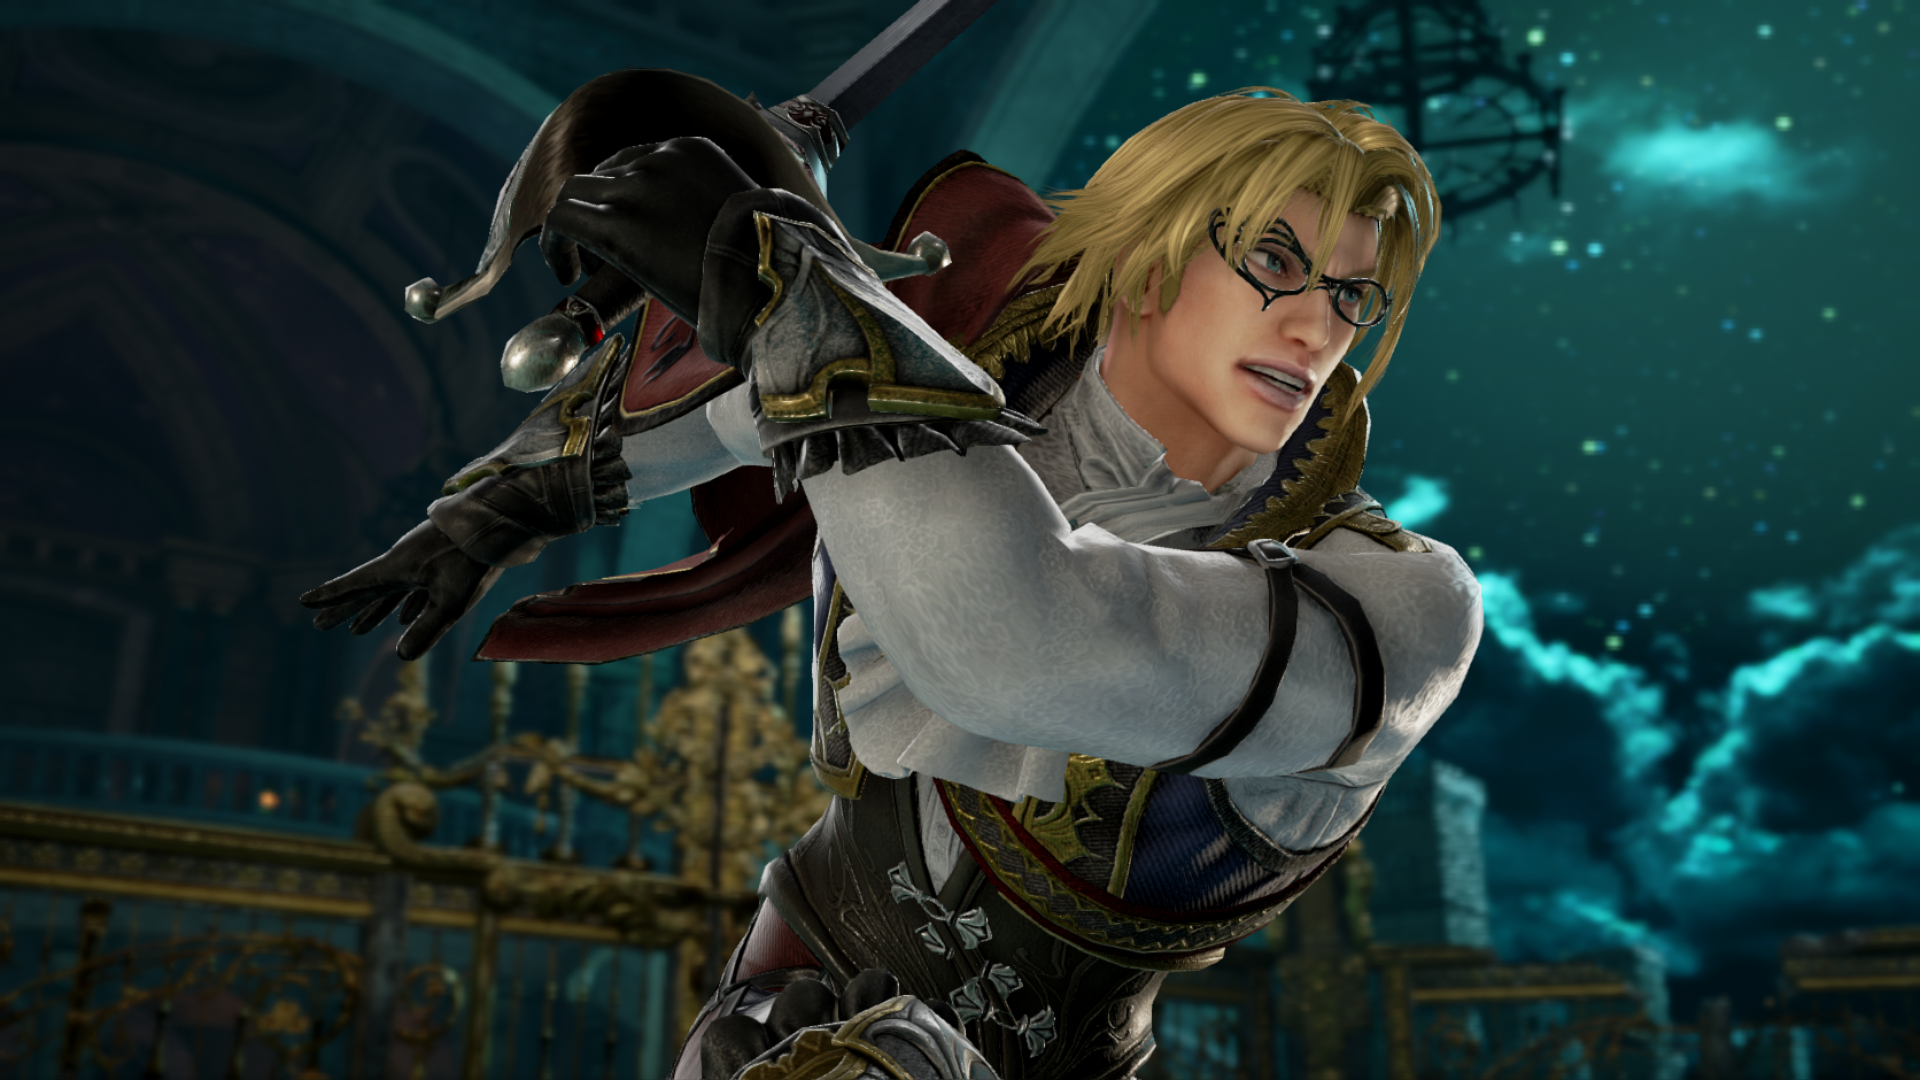 SOULCALIBUR VI Hands-On Preview - I'm Ready To Ring Out!